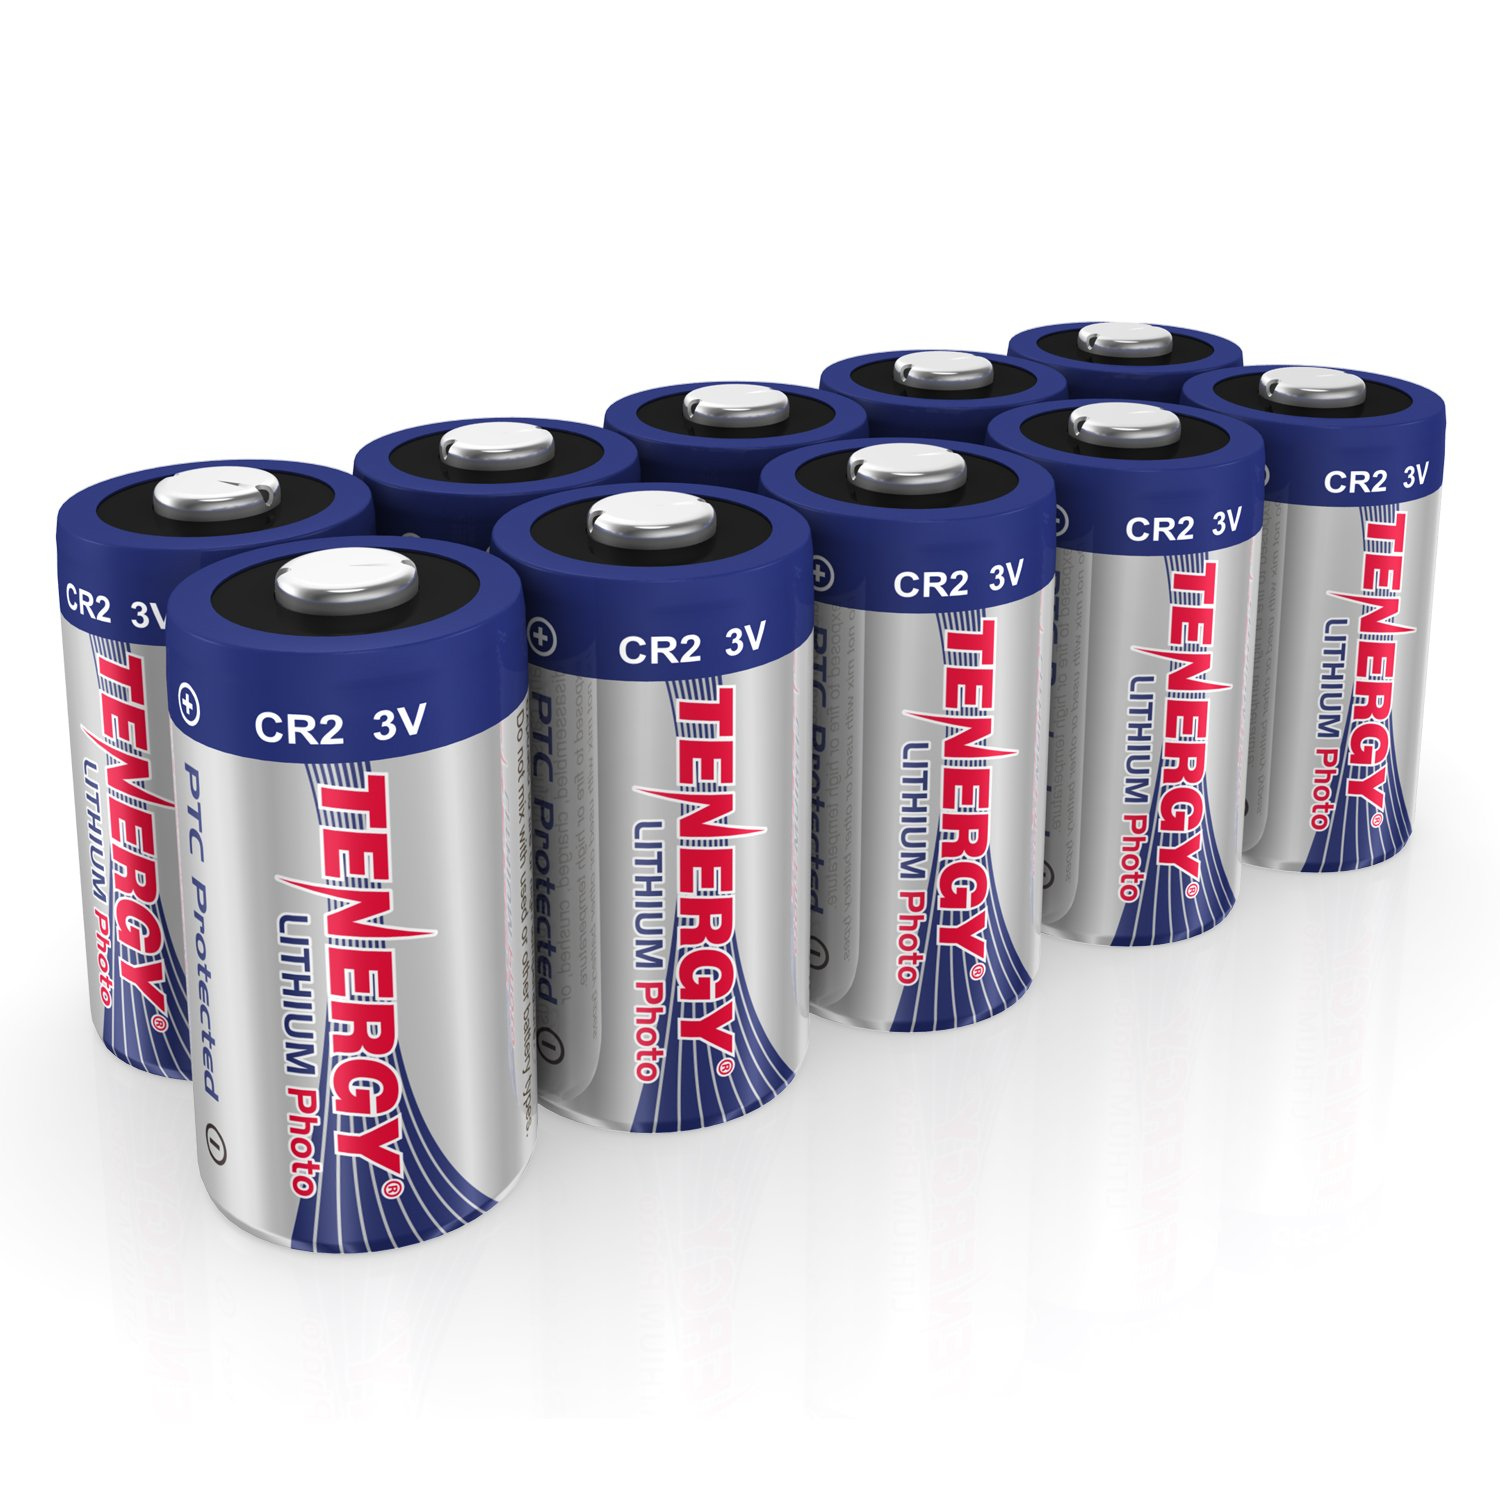 Tenergy CR2 Photo Lithium Battery Replacement